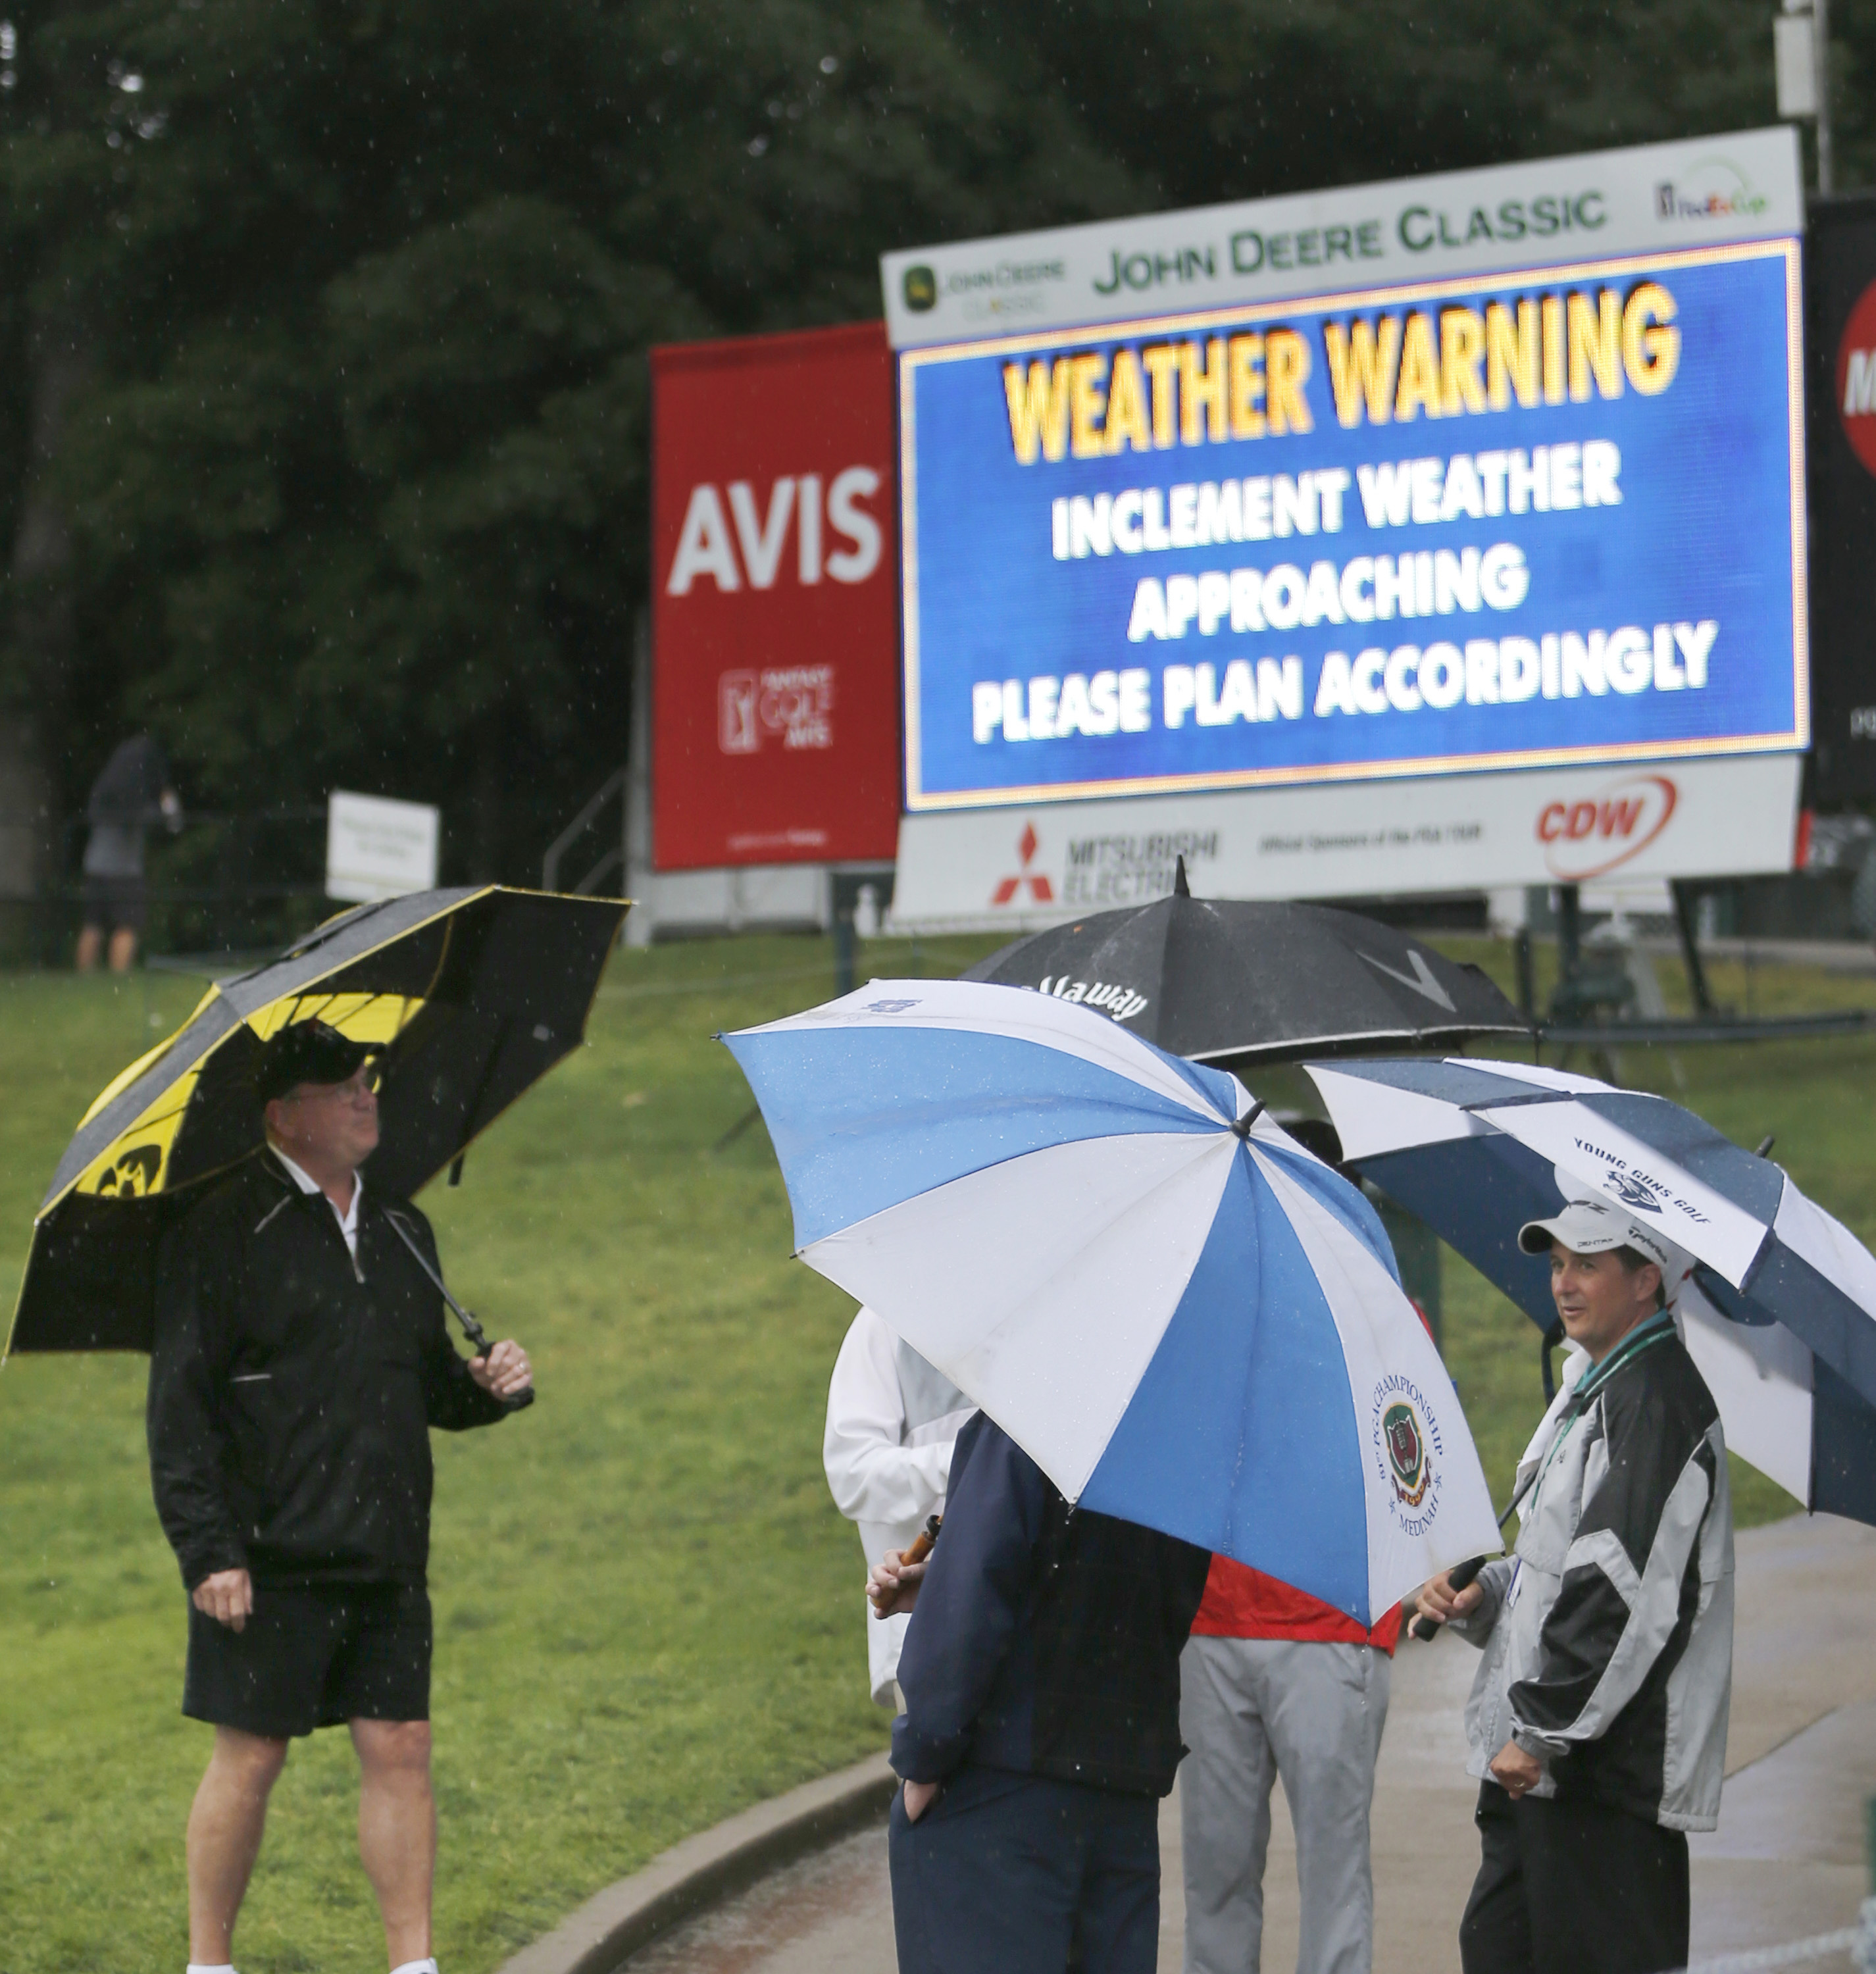 Spectators stand around the 18th green as a severe weather warning is posted on the scoreboard during a rain delay at the third round of the John Deere Classic golf tournament, Saturday, July 11, 2015, in Silvis, Ill. (AP Photo/Charles Rex Arbogast)